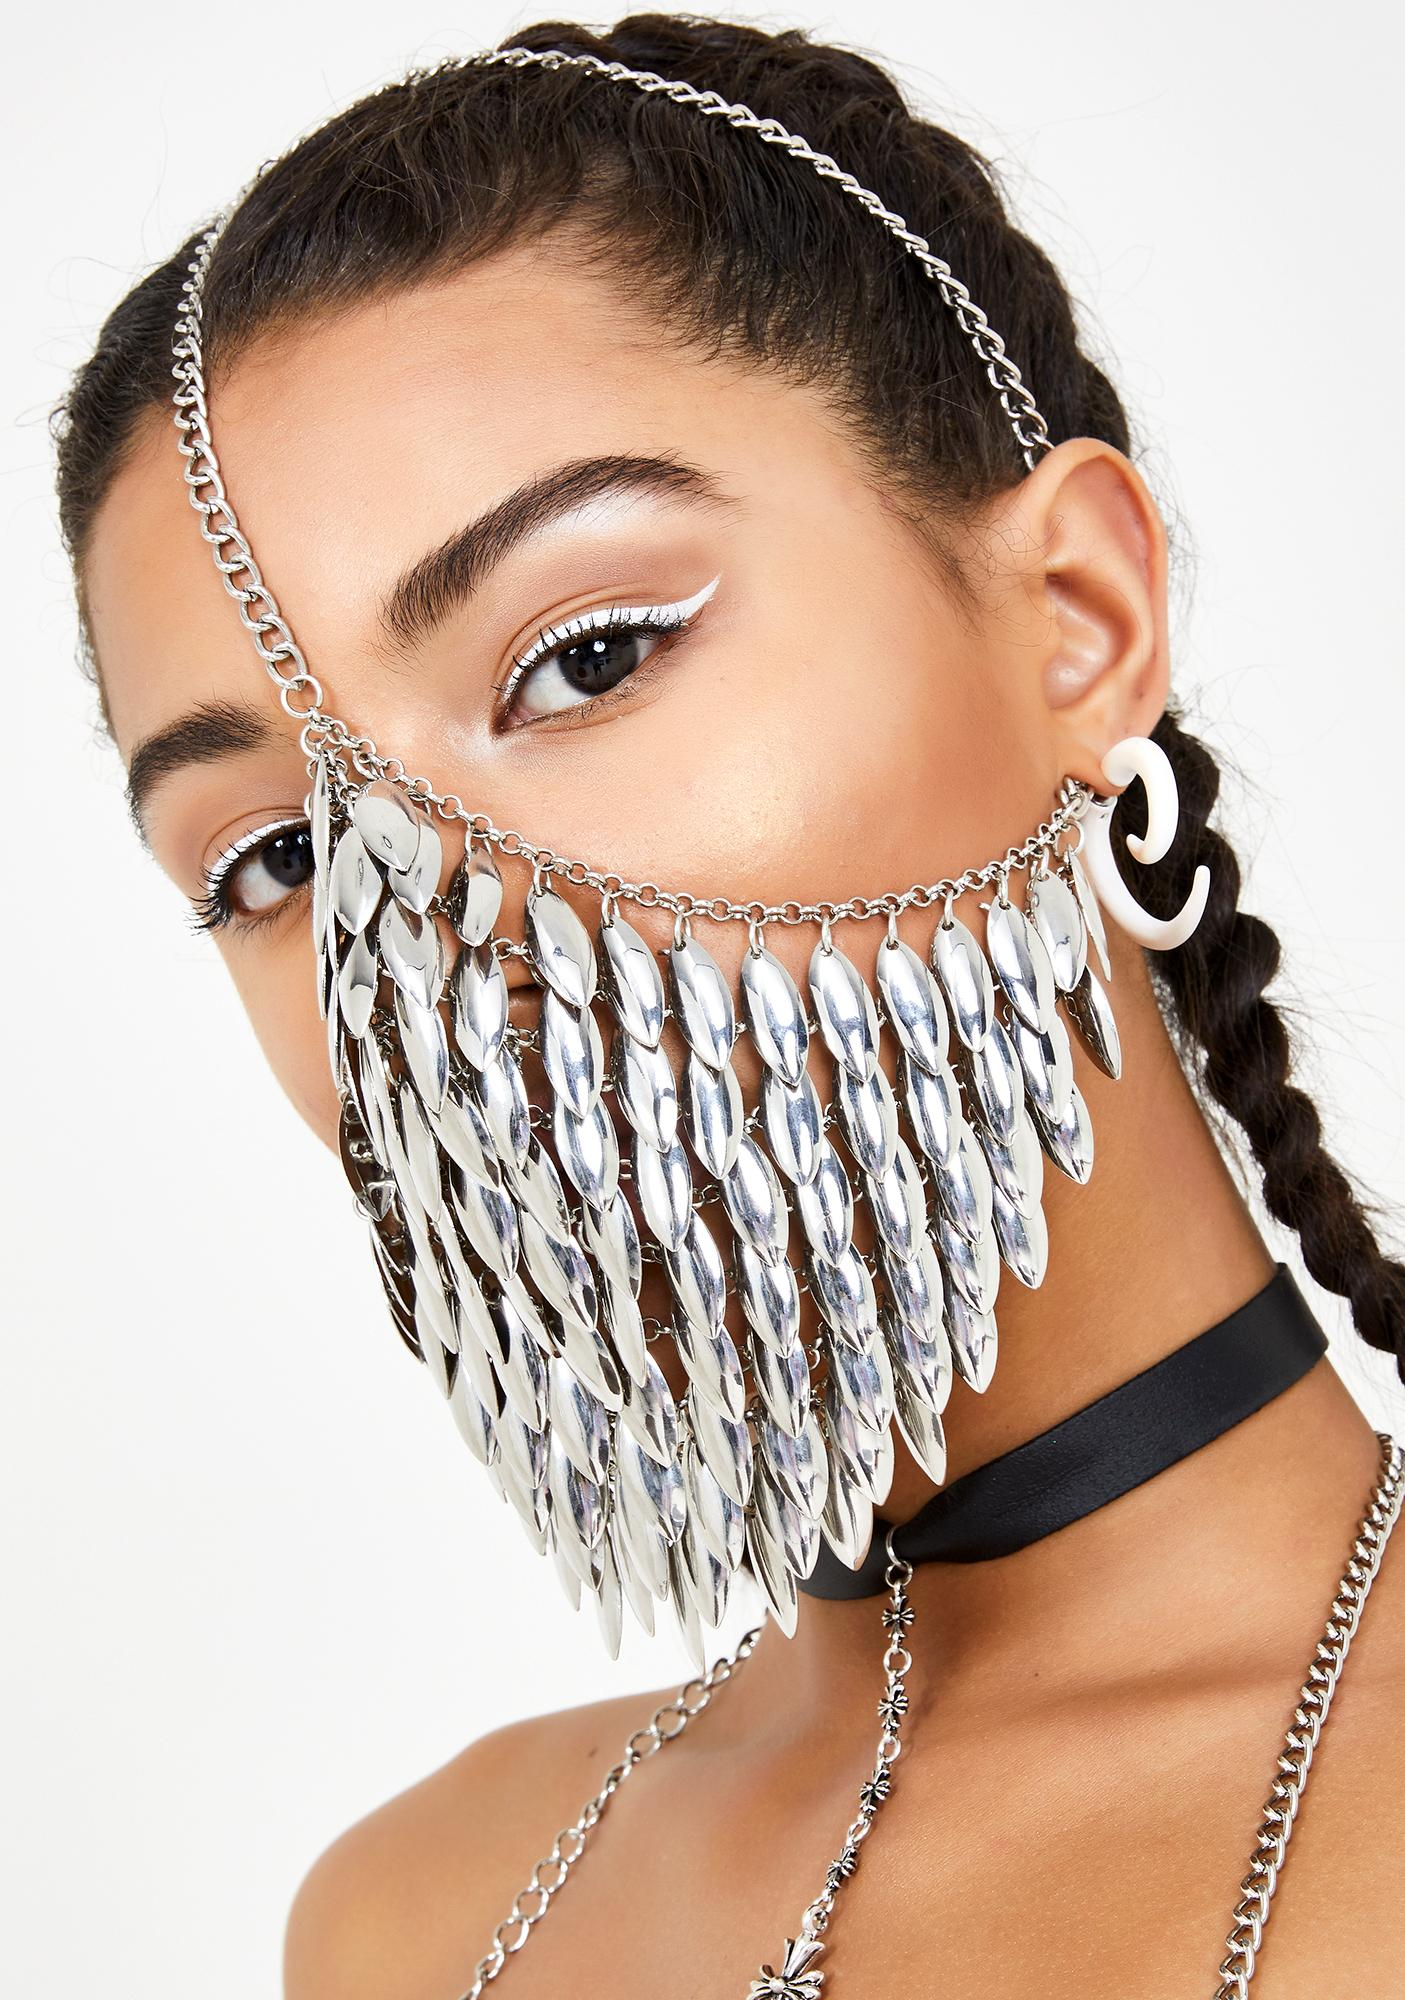 The Assassin Chain Mask